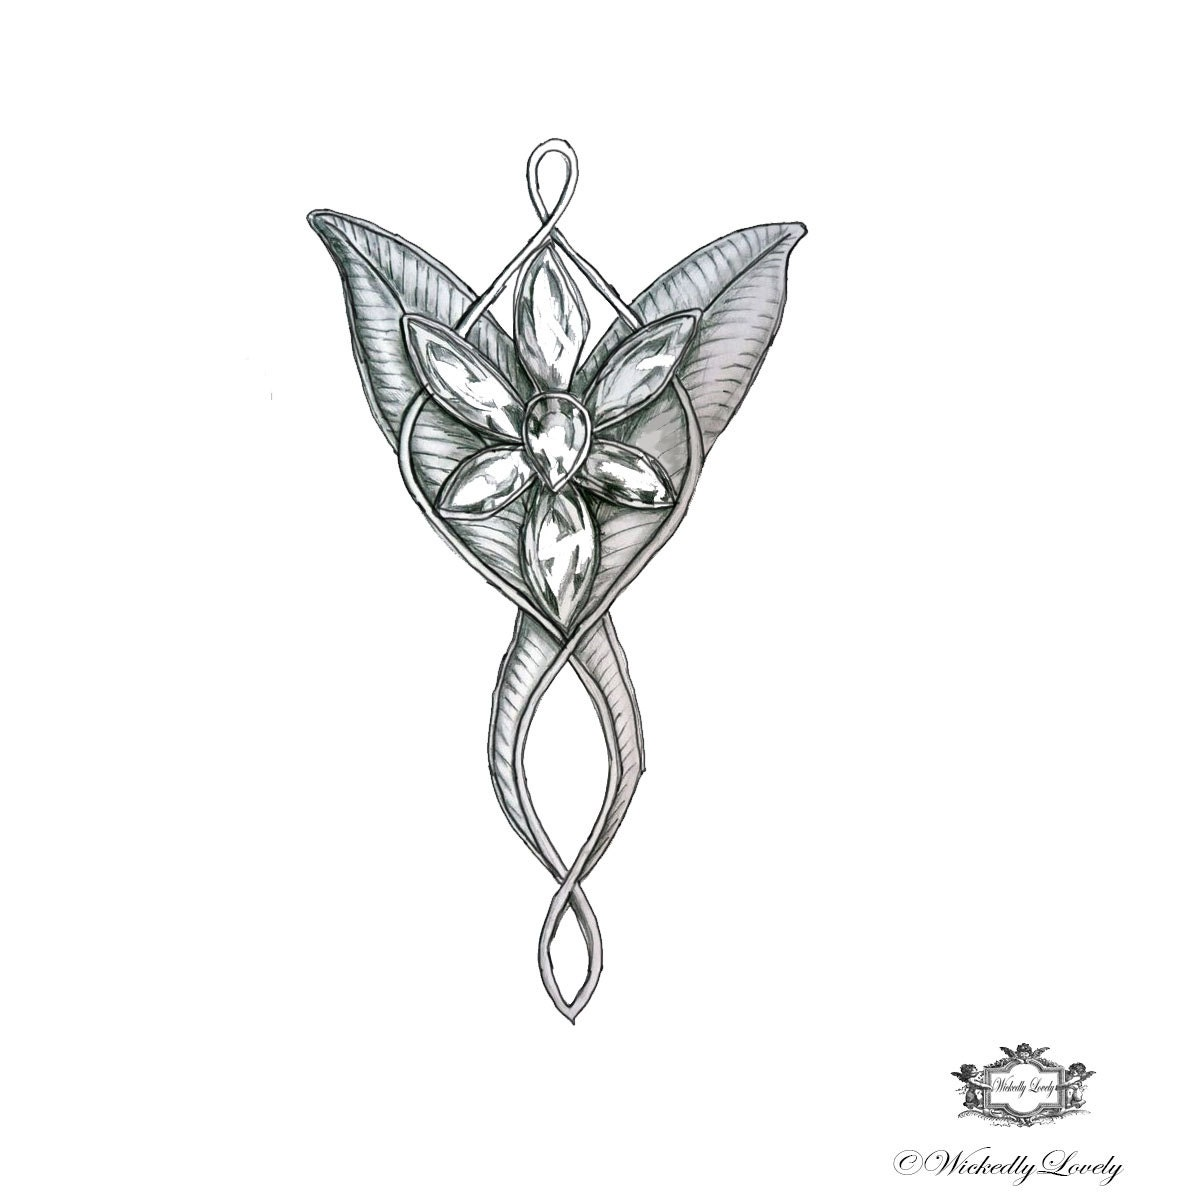 Arwen Evenstar Tattoo Evenstar Arwen's Necklace